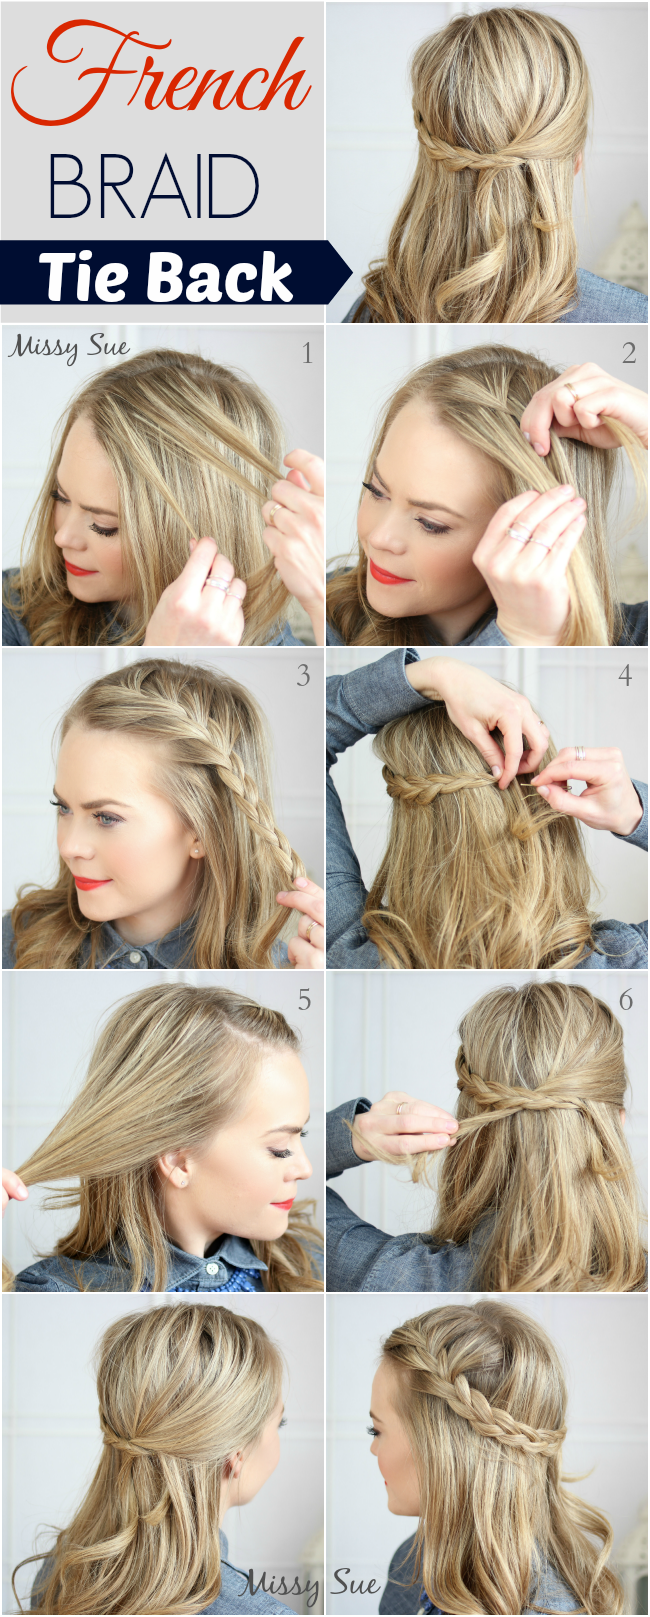 braid 17-french braid tie back | hair and beauty | cabello